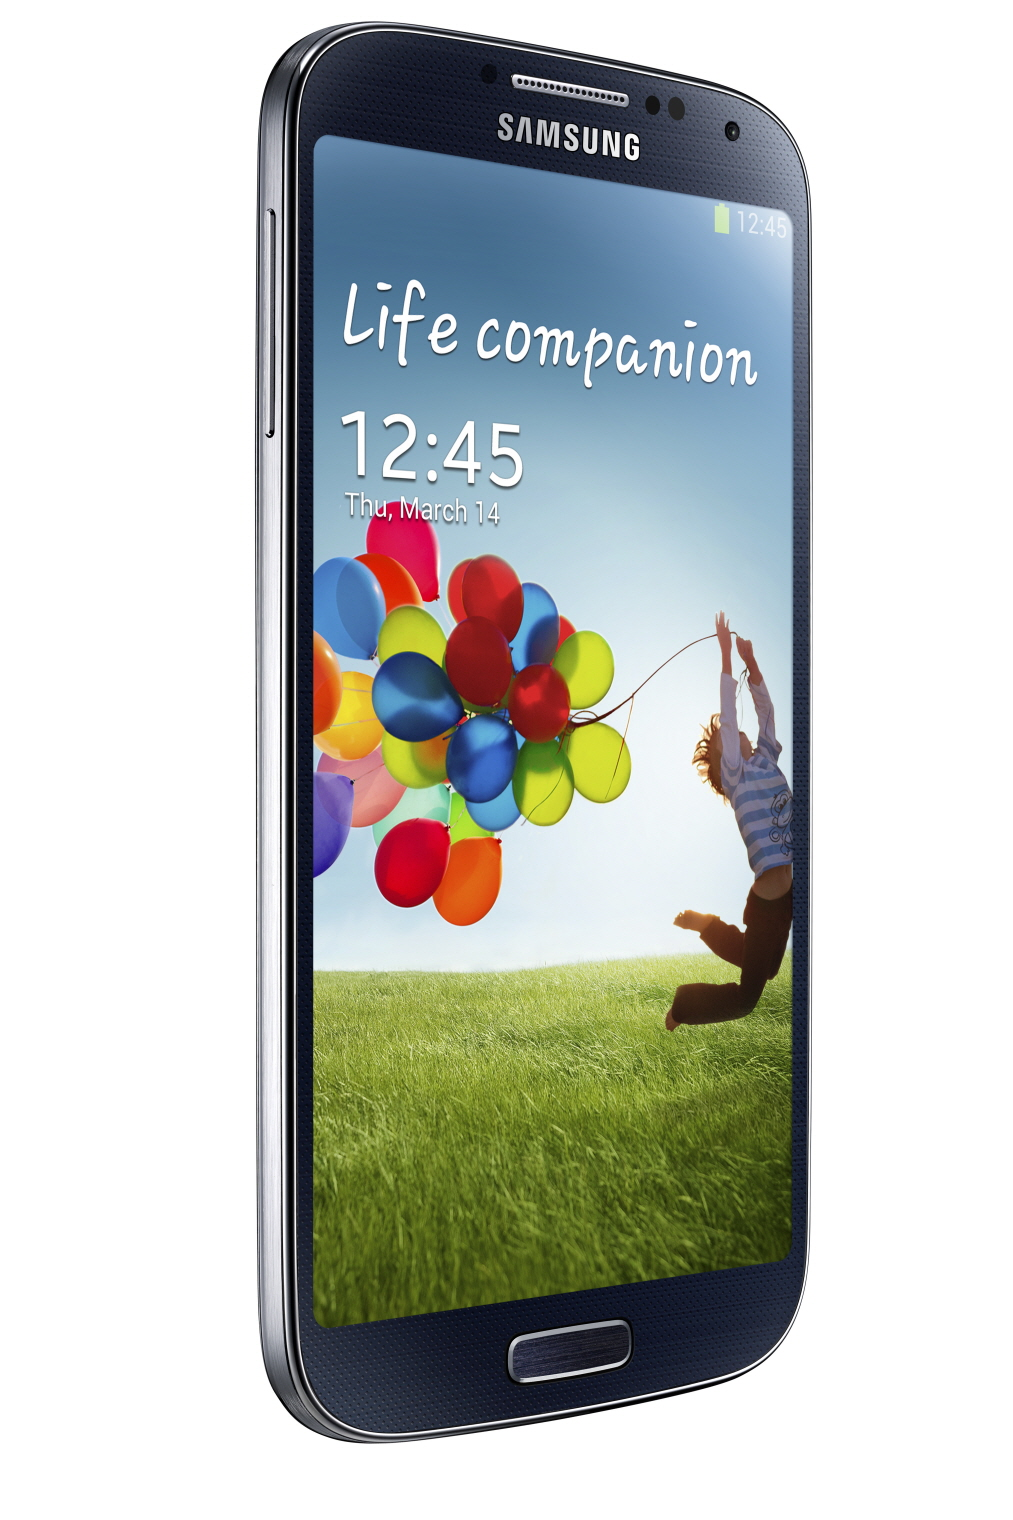 Samsung Introduces the GALAXY S4: A Life Companion for a Richer, Simpler and Fuller Life